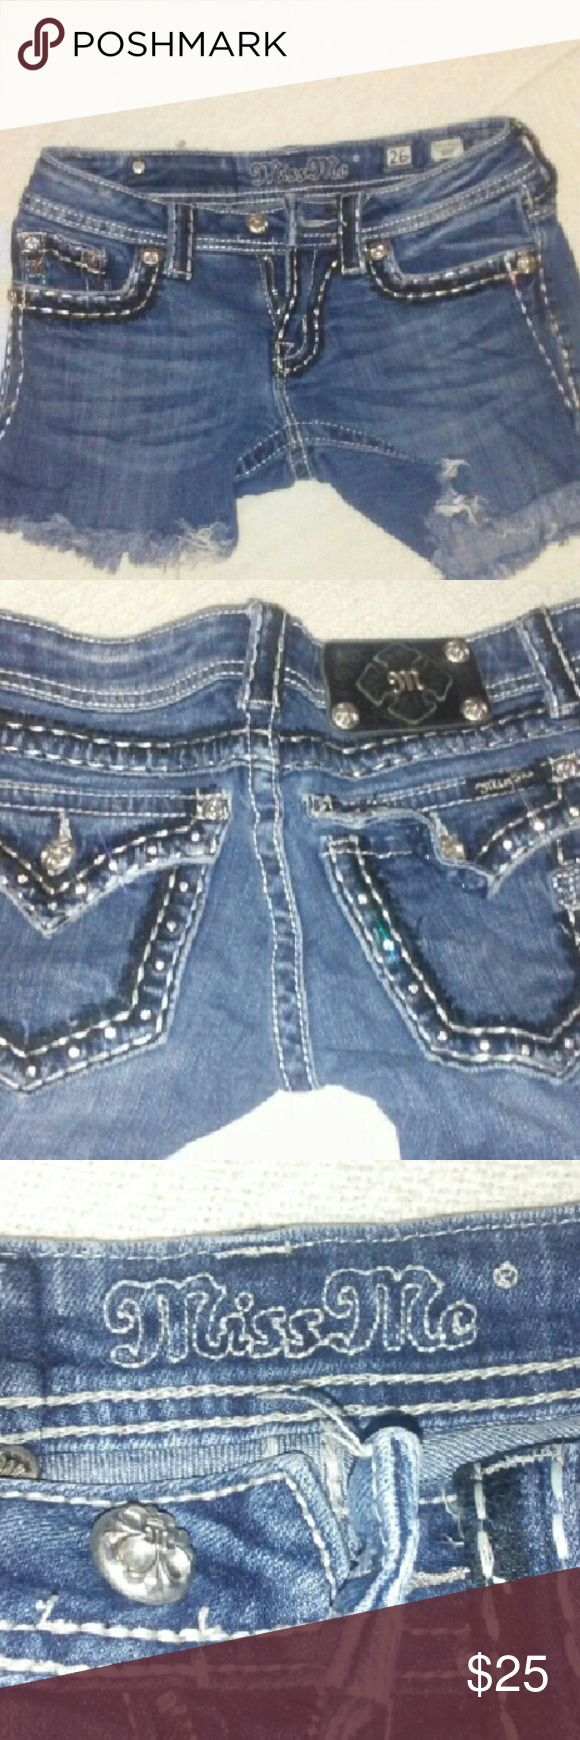 Miss Me women's cut off denim shorts size 26 Gently used Miss Me cut off denim shorts with black and silver embellishments. Super sexy yet tasteful. Pair with distressed black stockings for a fall look. Size 26 Miss Me Shorts Jean Shorts